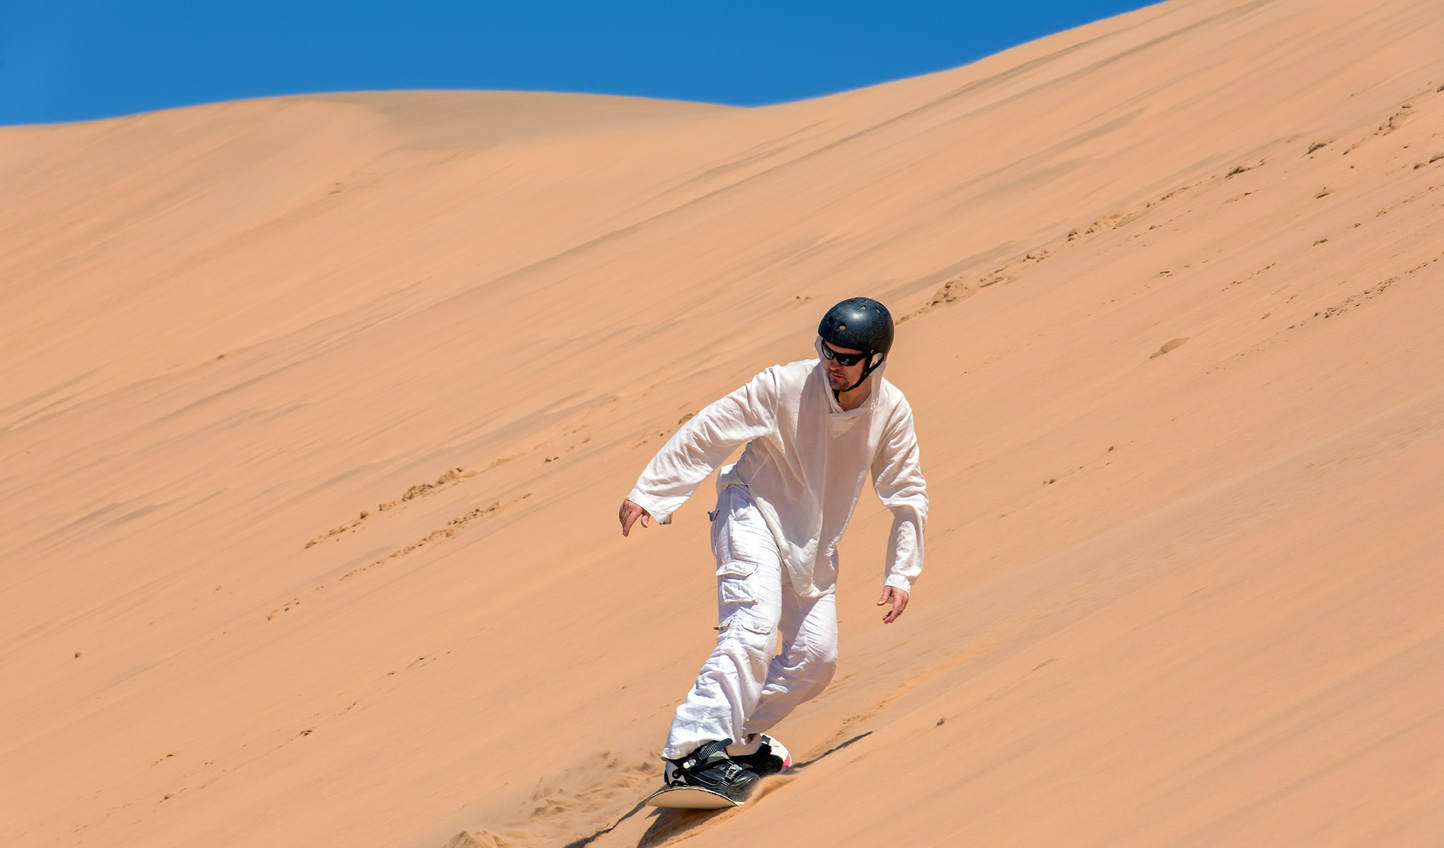 Zoom down a sand dune in style